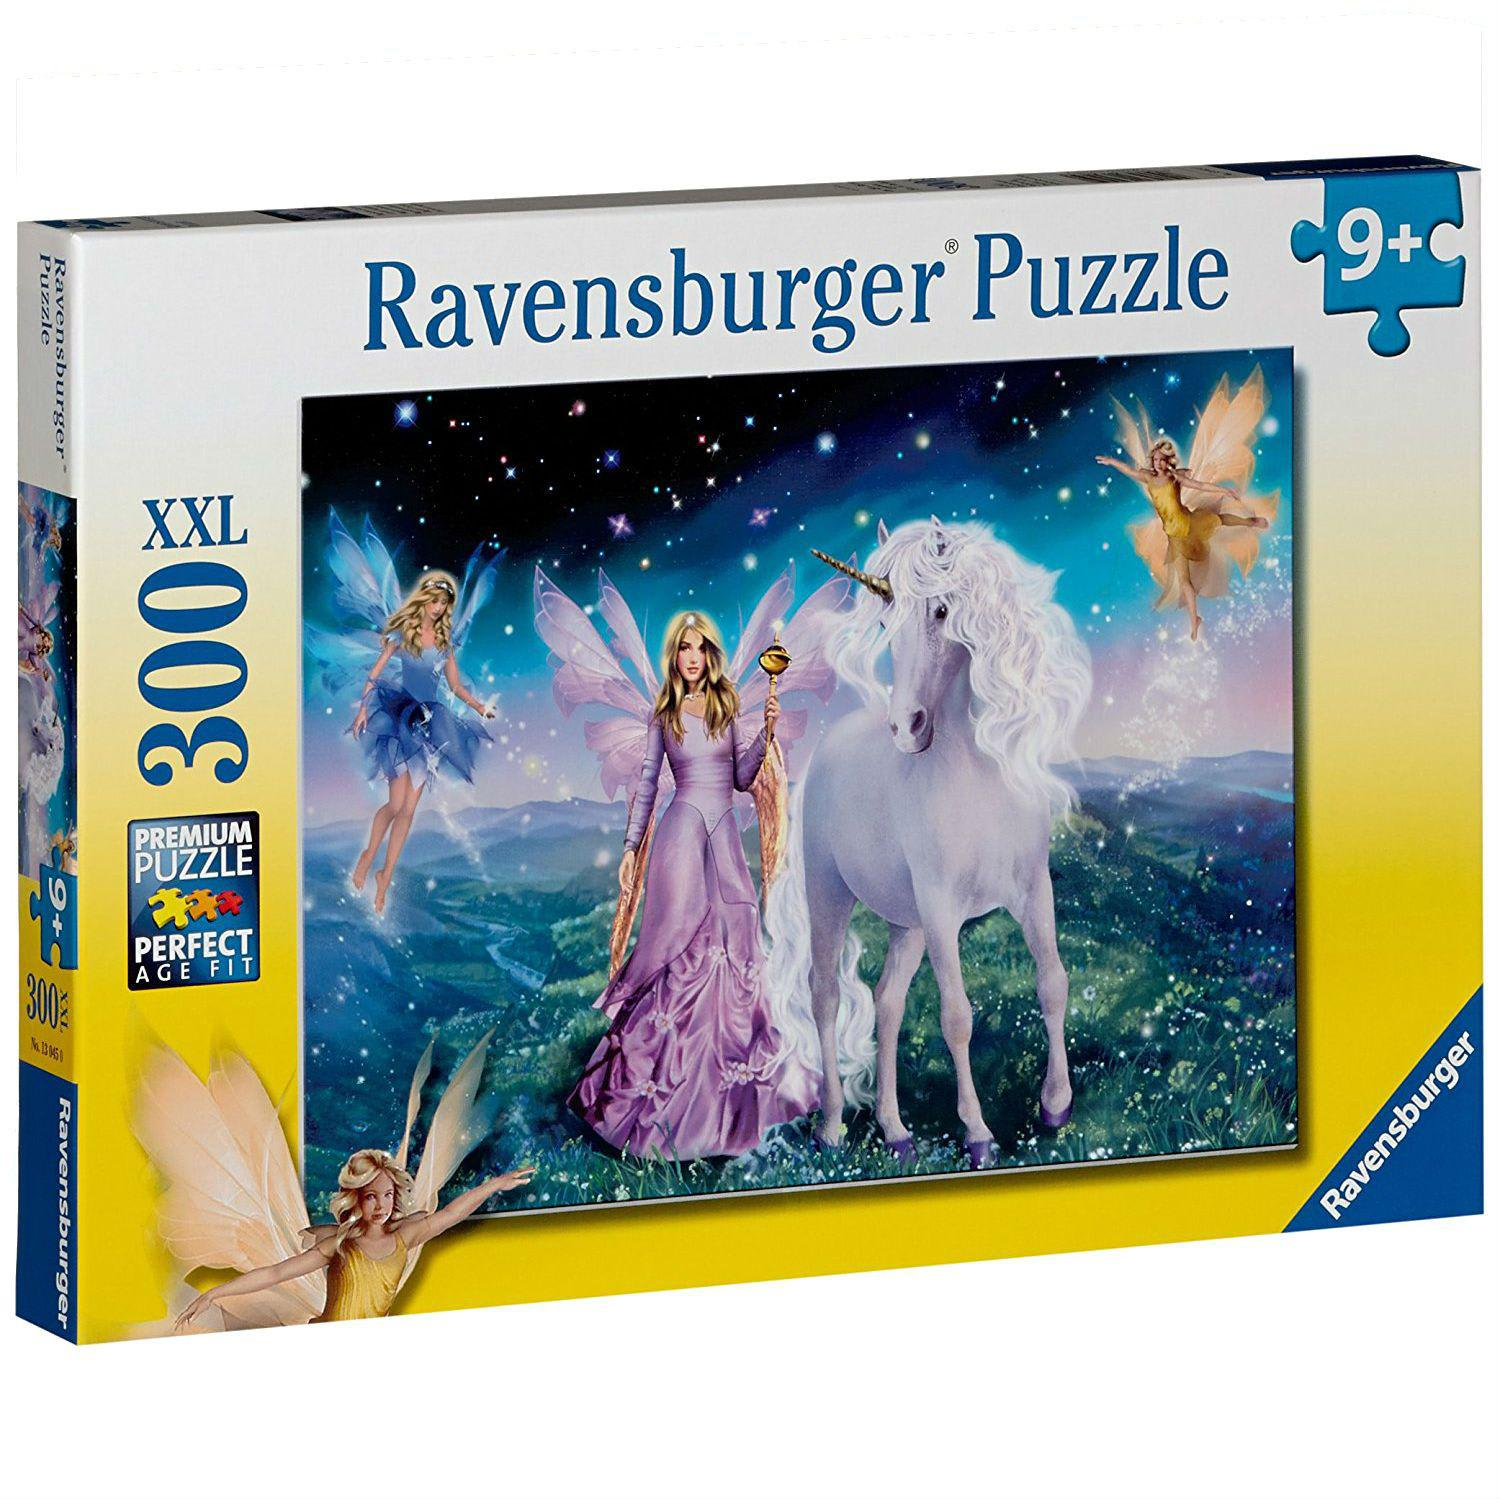 Ravensburger Mystical Unicorns Puzzle 300 Piece